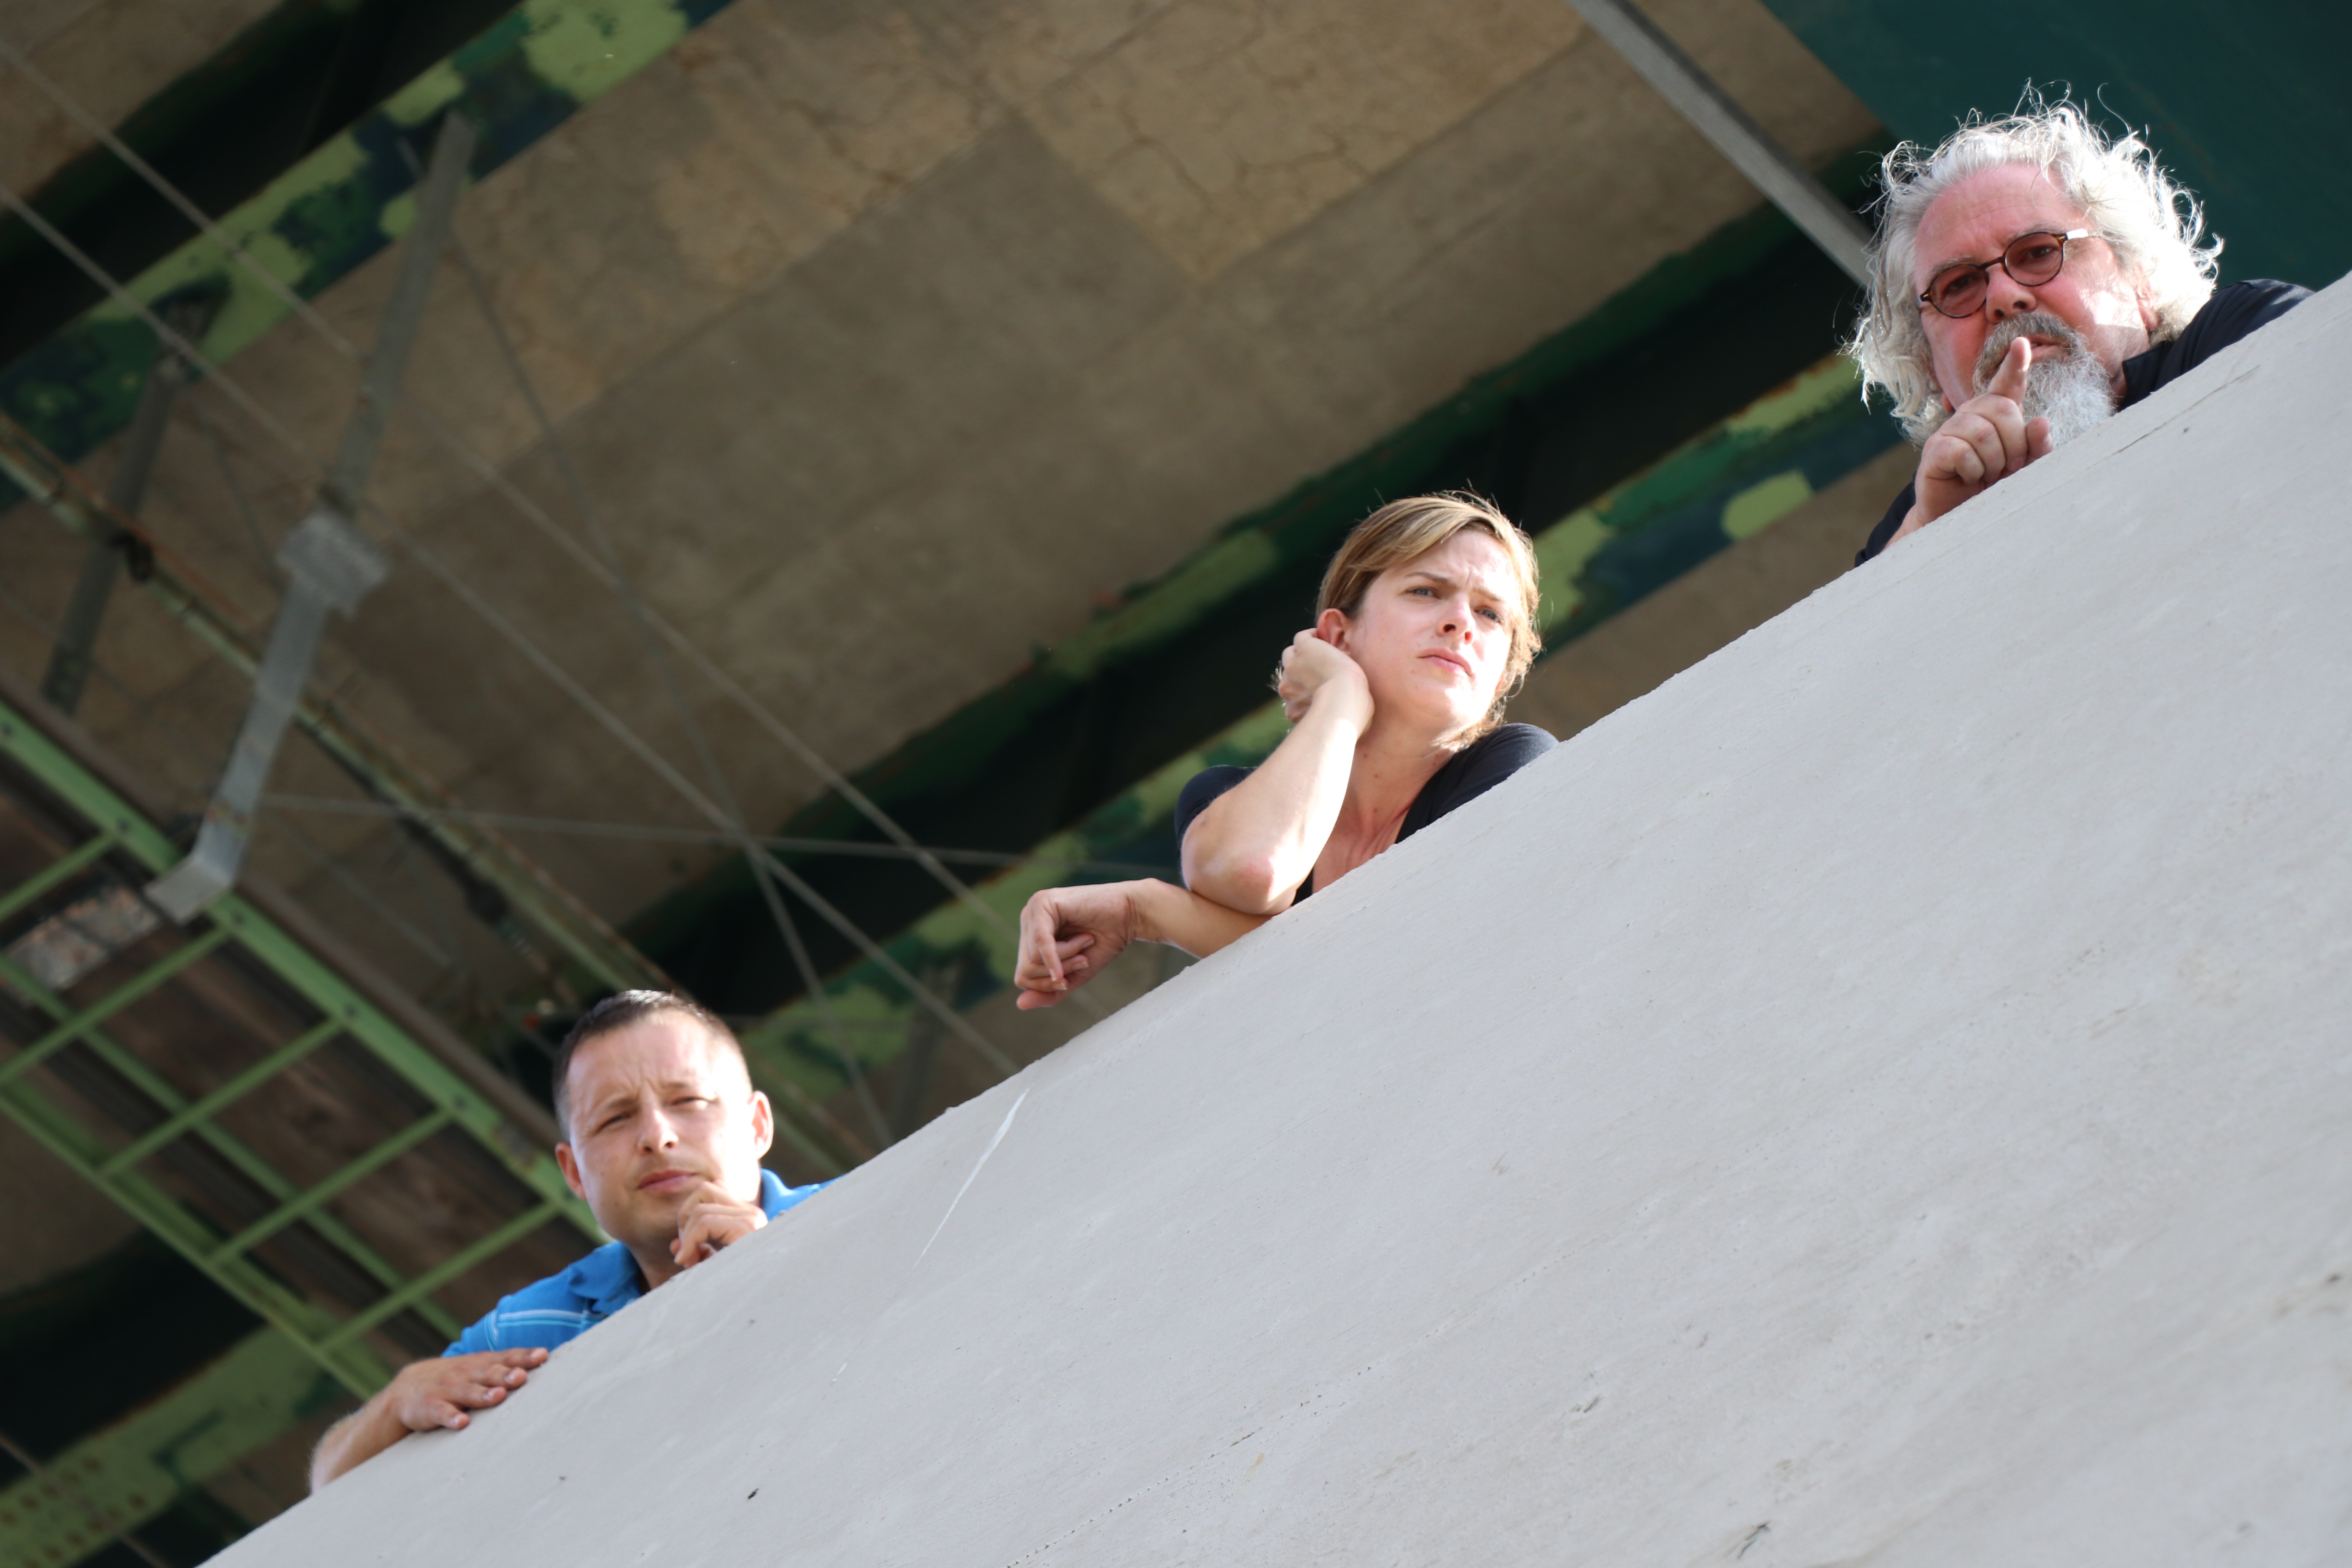 Three people look over the edge of a concrete bridge abutment.